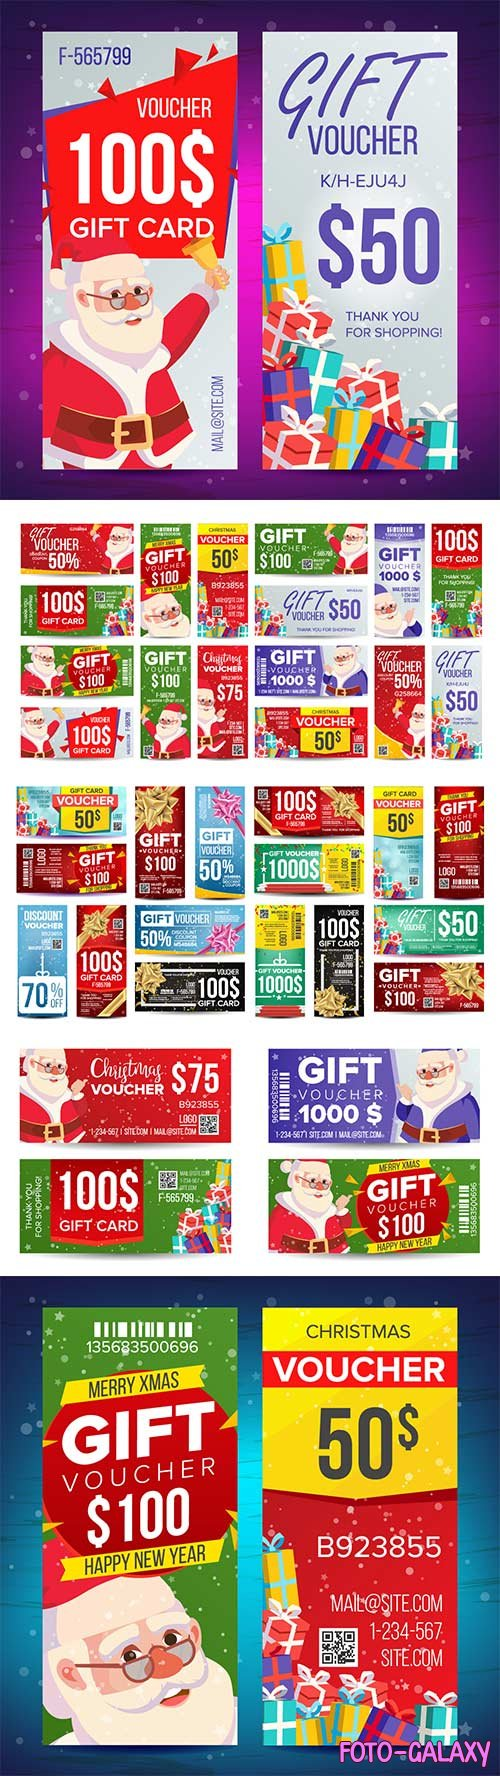 Merry Christmas voucher gift design vector set, Santa